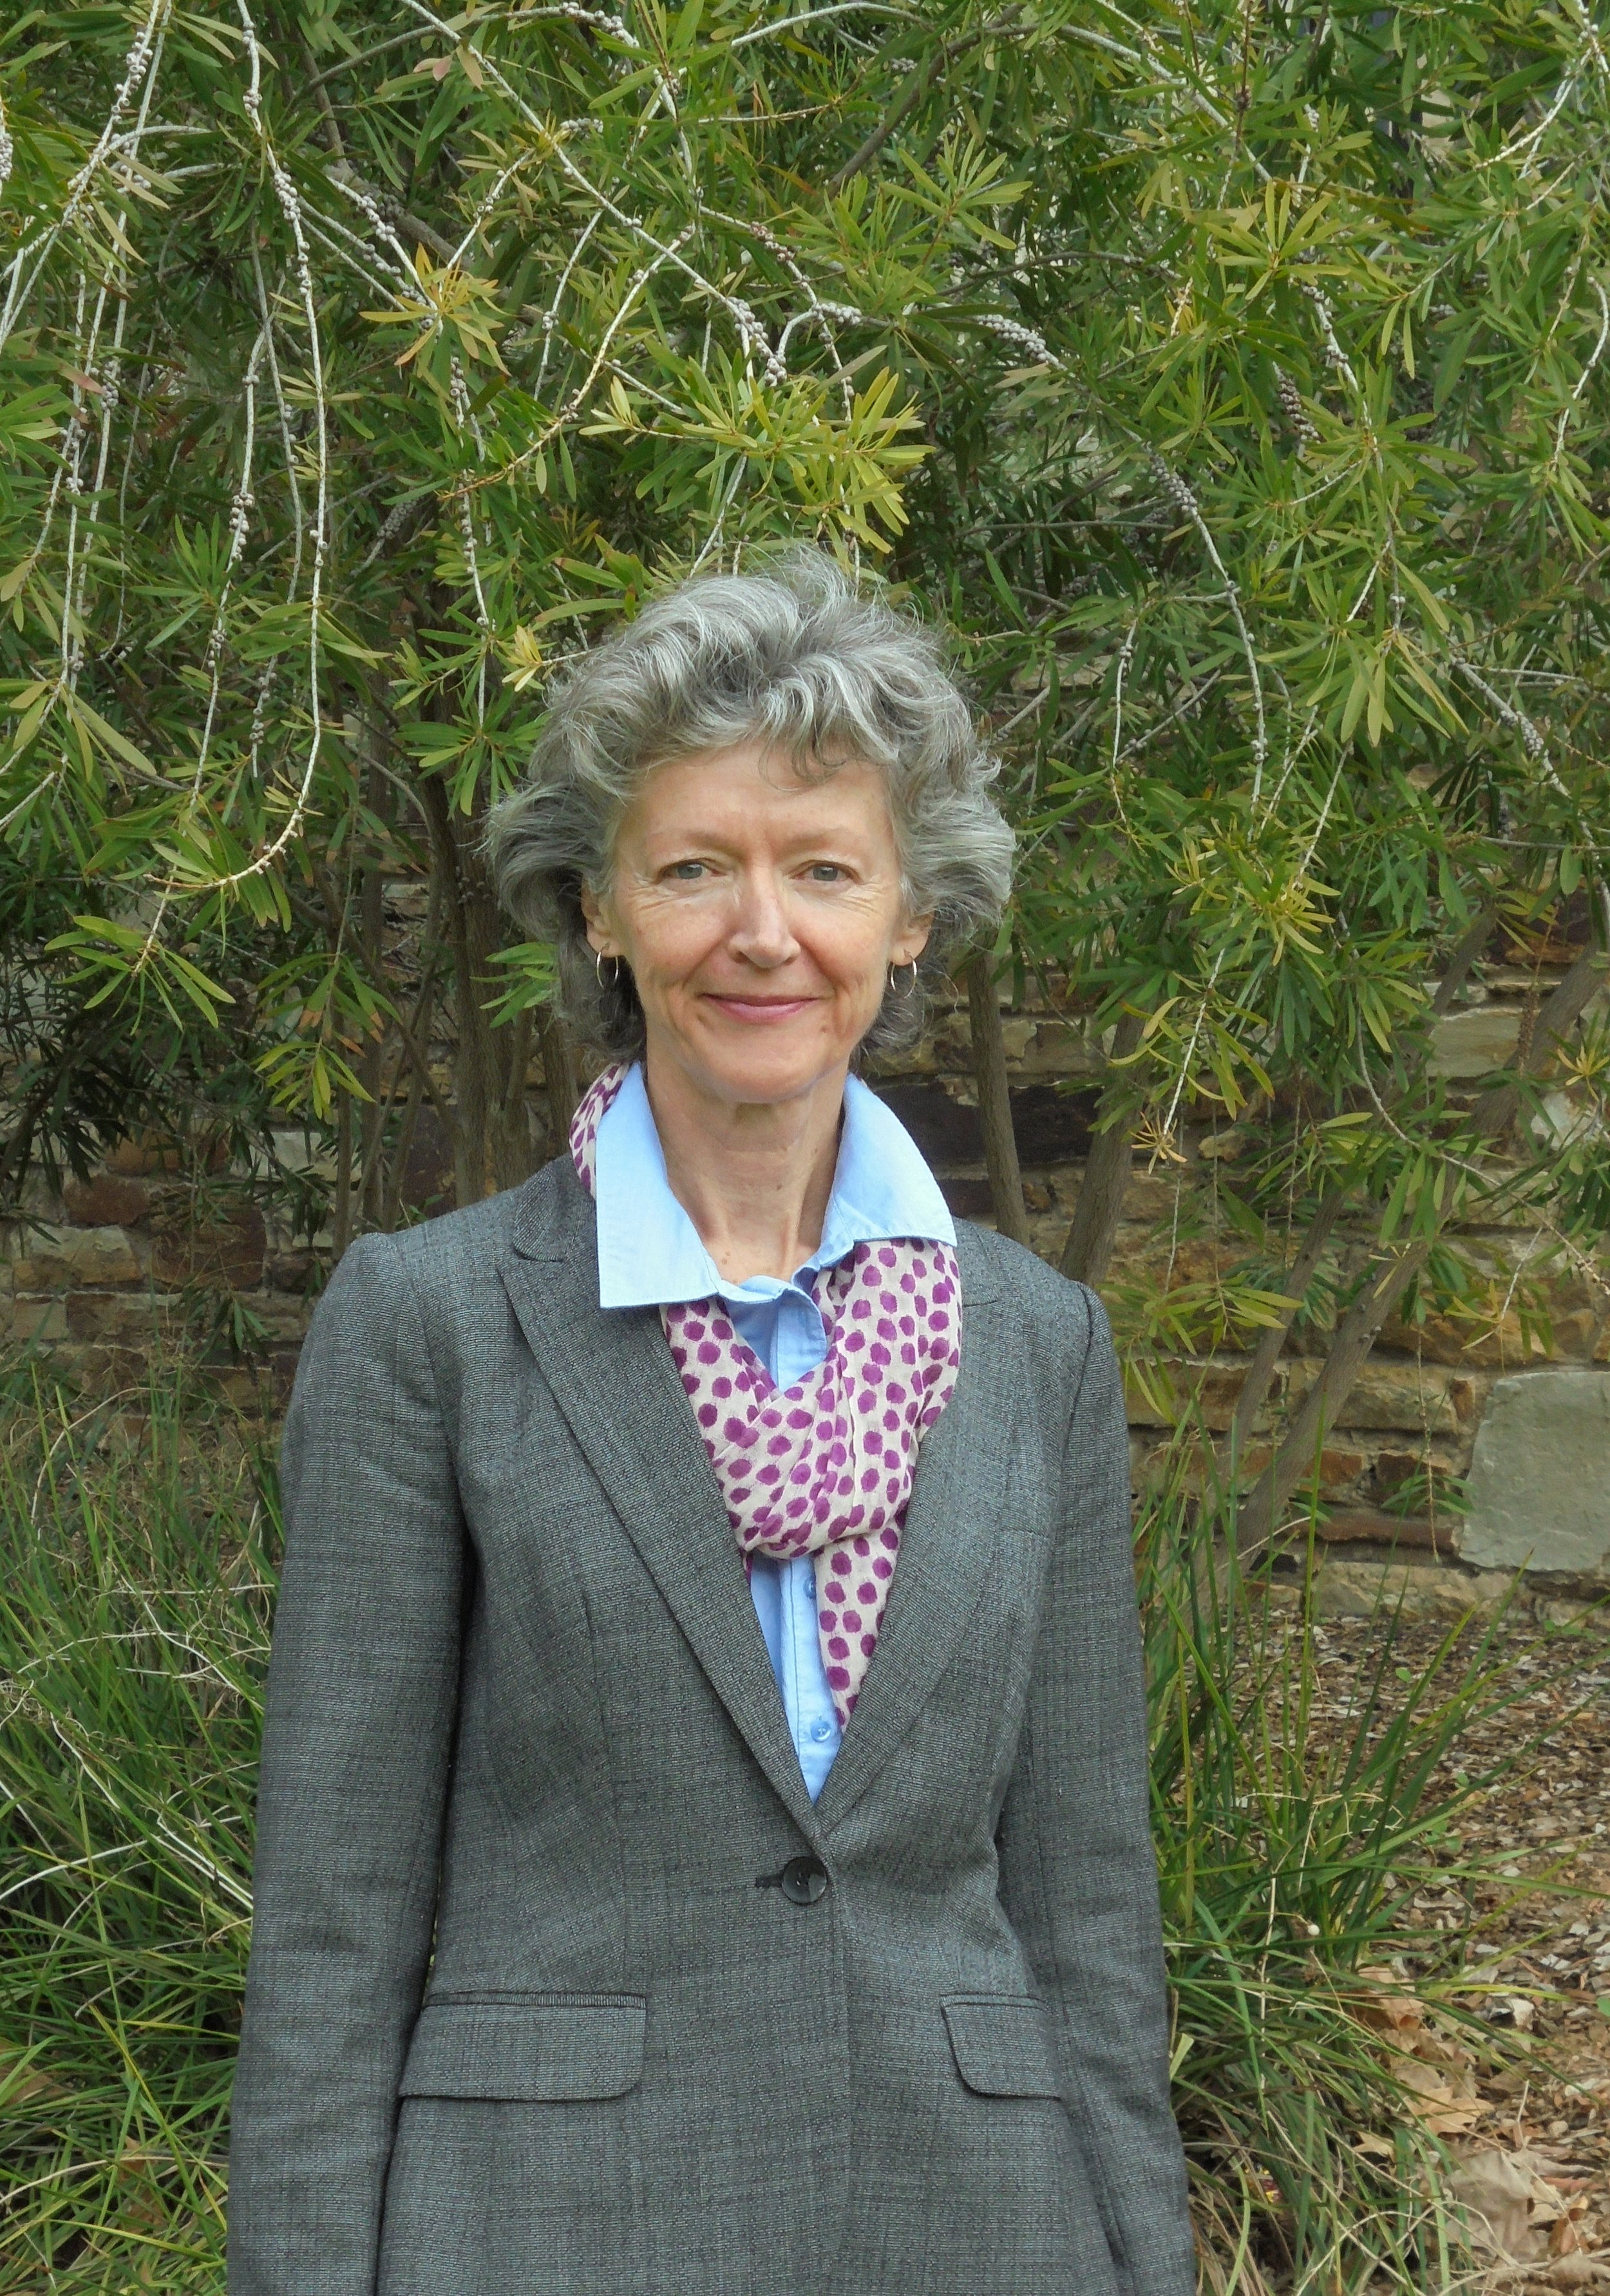 """Jennifer A. McMahon is Professor of Philosophy at the University of Adelaide. She is editor of   Social Aesthetics and Moral Judgment: Pleasure, Reflection and Accountability   forthcoming in 2018 with Routledge; and recently edited the inaugural issue of the  Australasian Philosophical Review  1.1 (March) 2017 on """"The Pleasure of Art""""."""